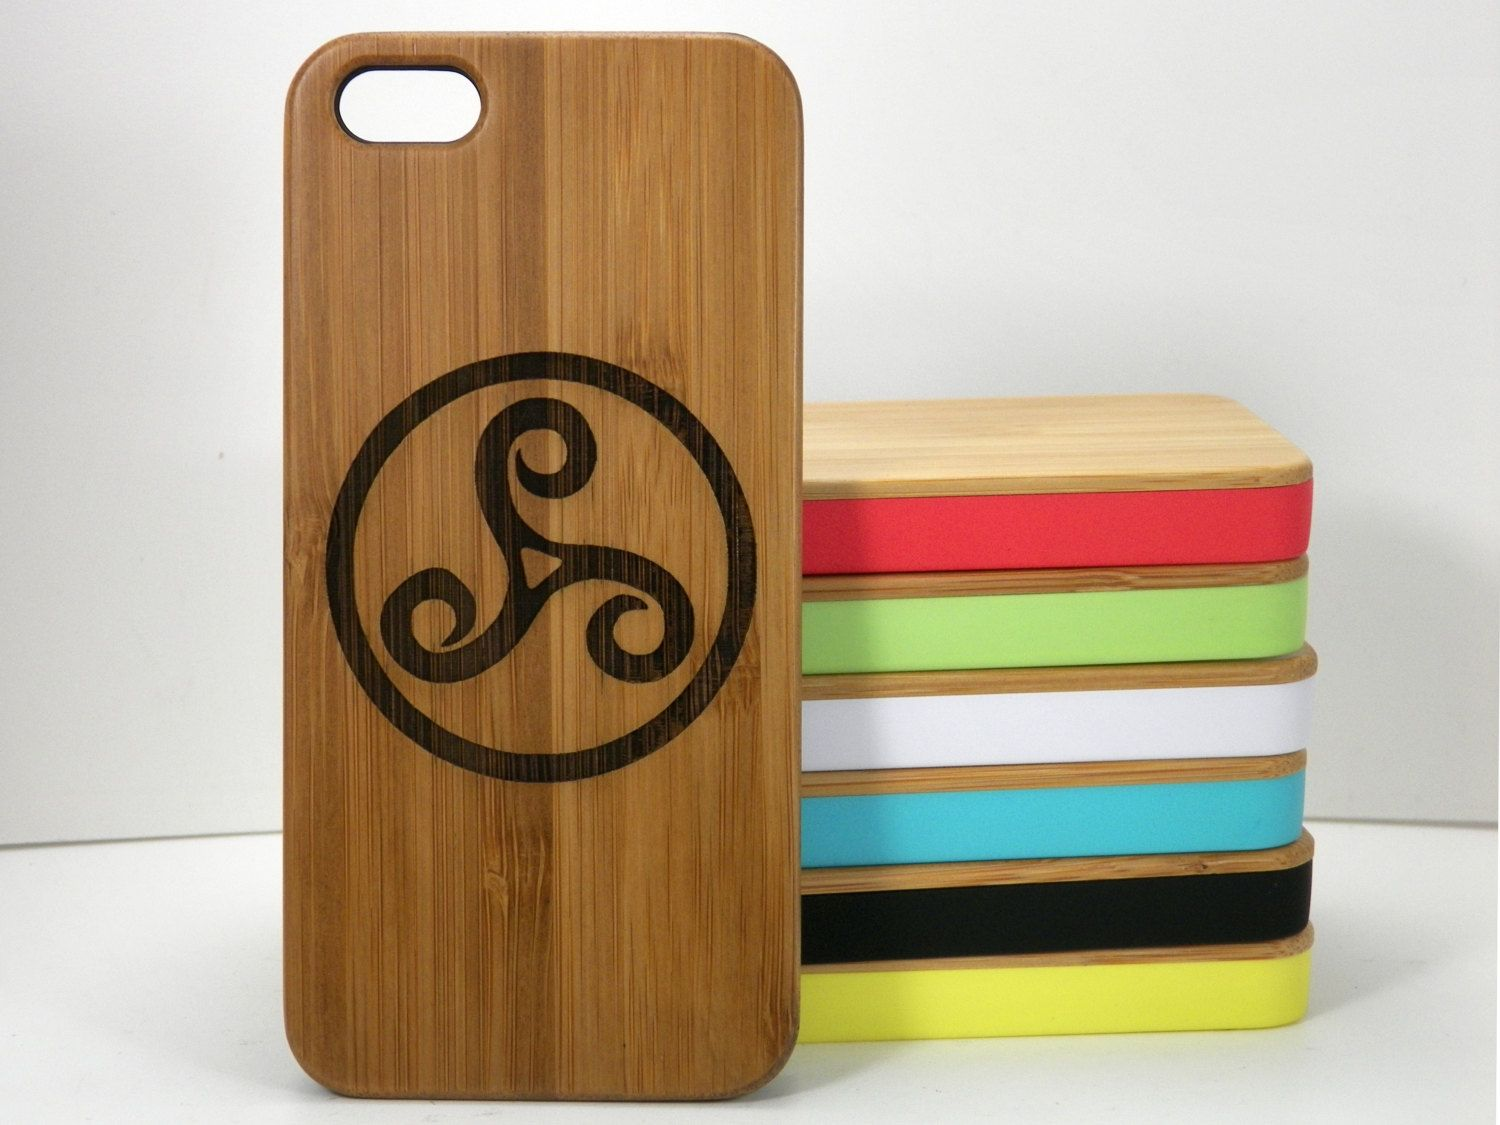 Triskele Symbol Iphone 5c Case Eco Friendly Bamboo Wood Cover